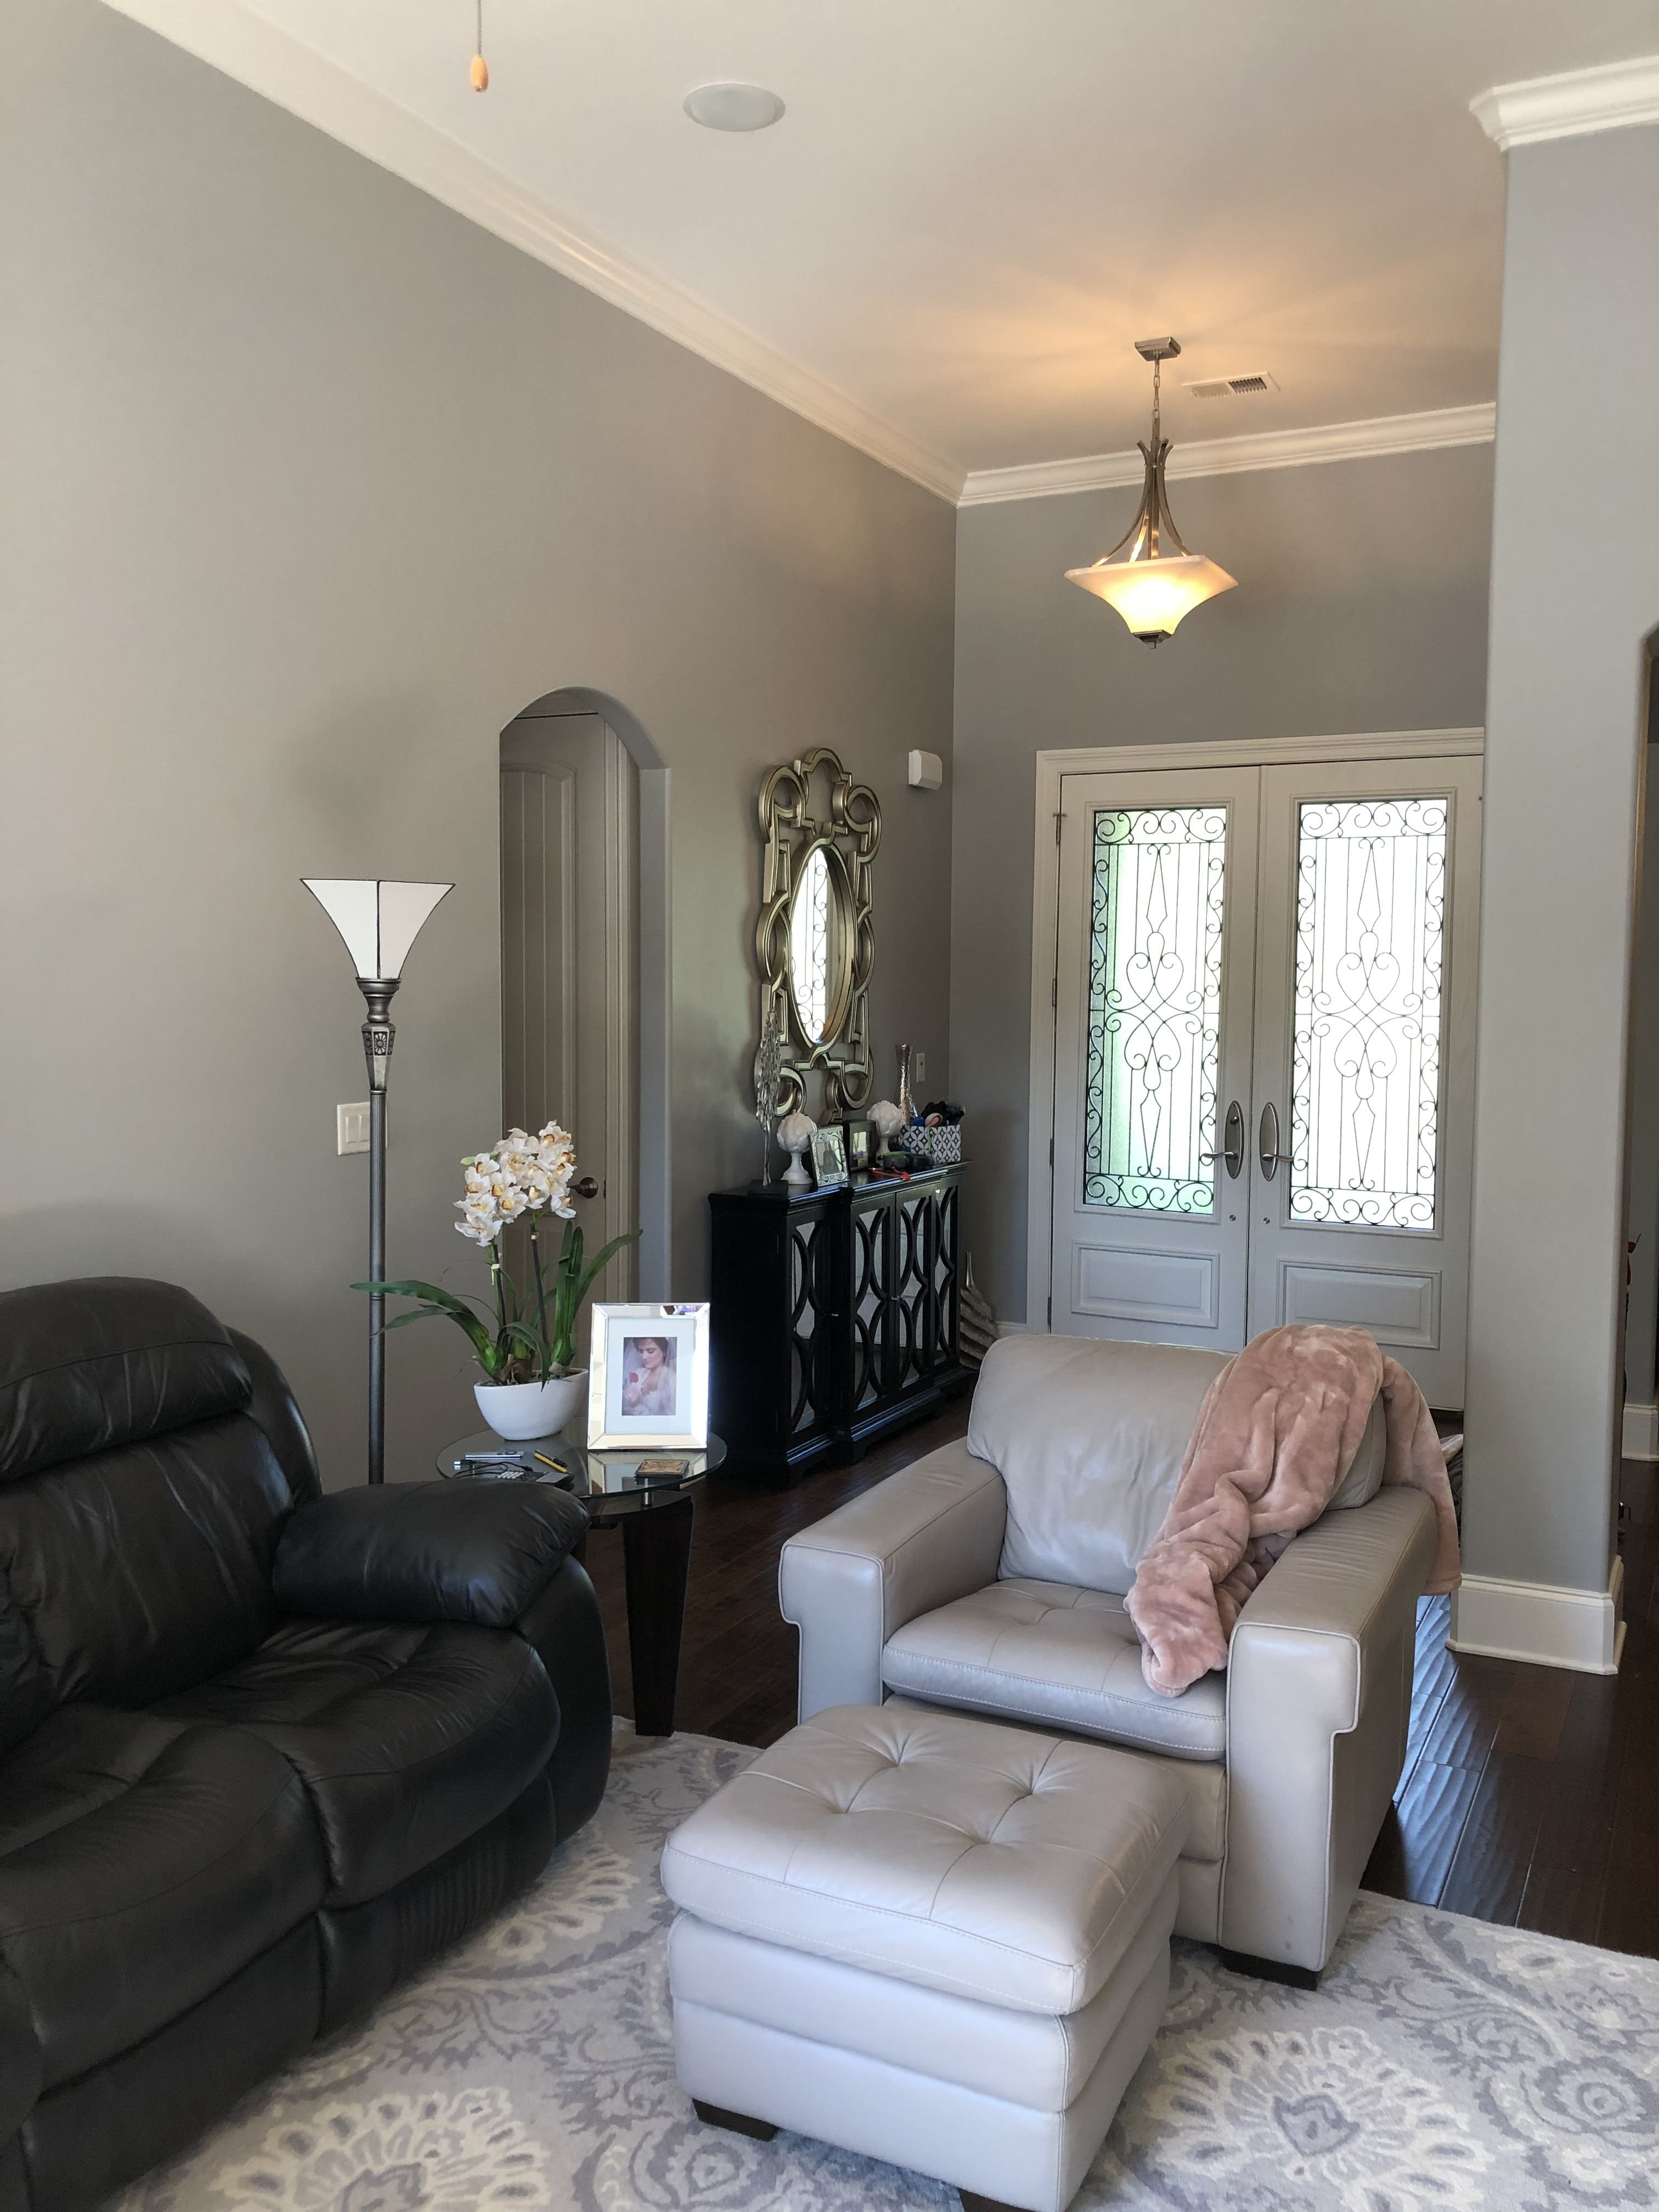 March wind by sherwin williams bedroom paint colors